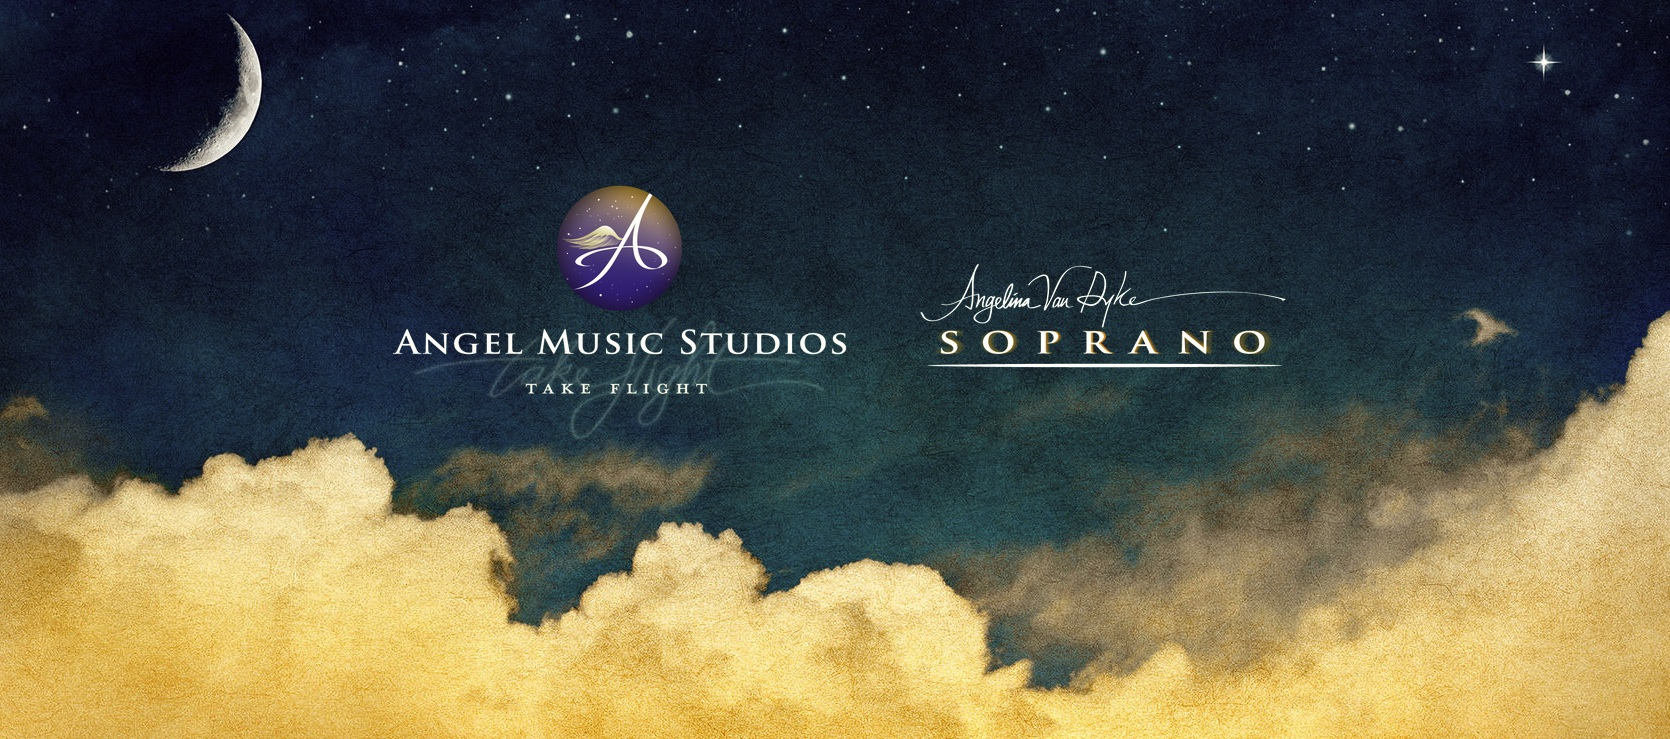 Angel Music Studio Banner_LeahYinStudio2015.jpg